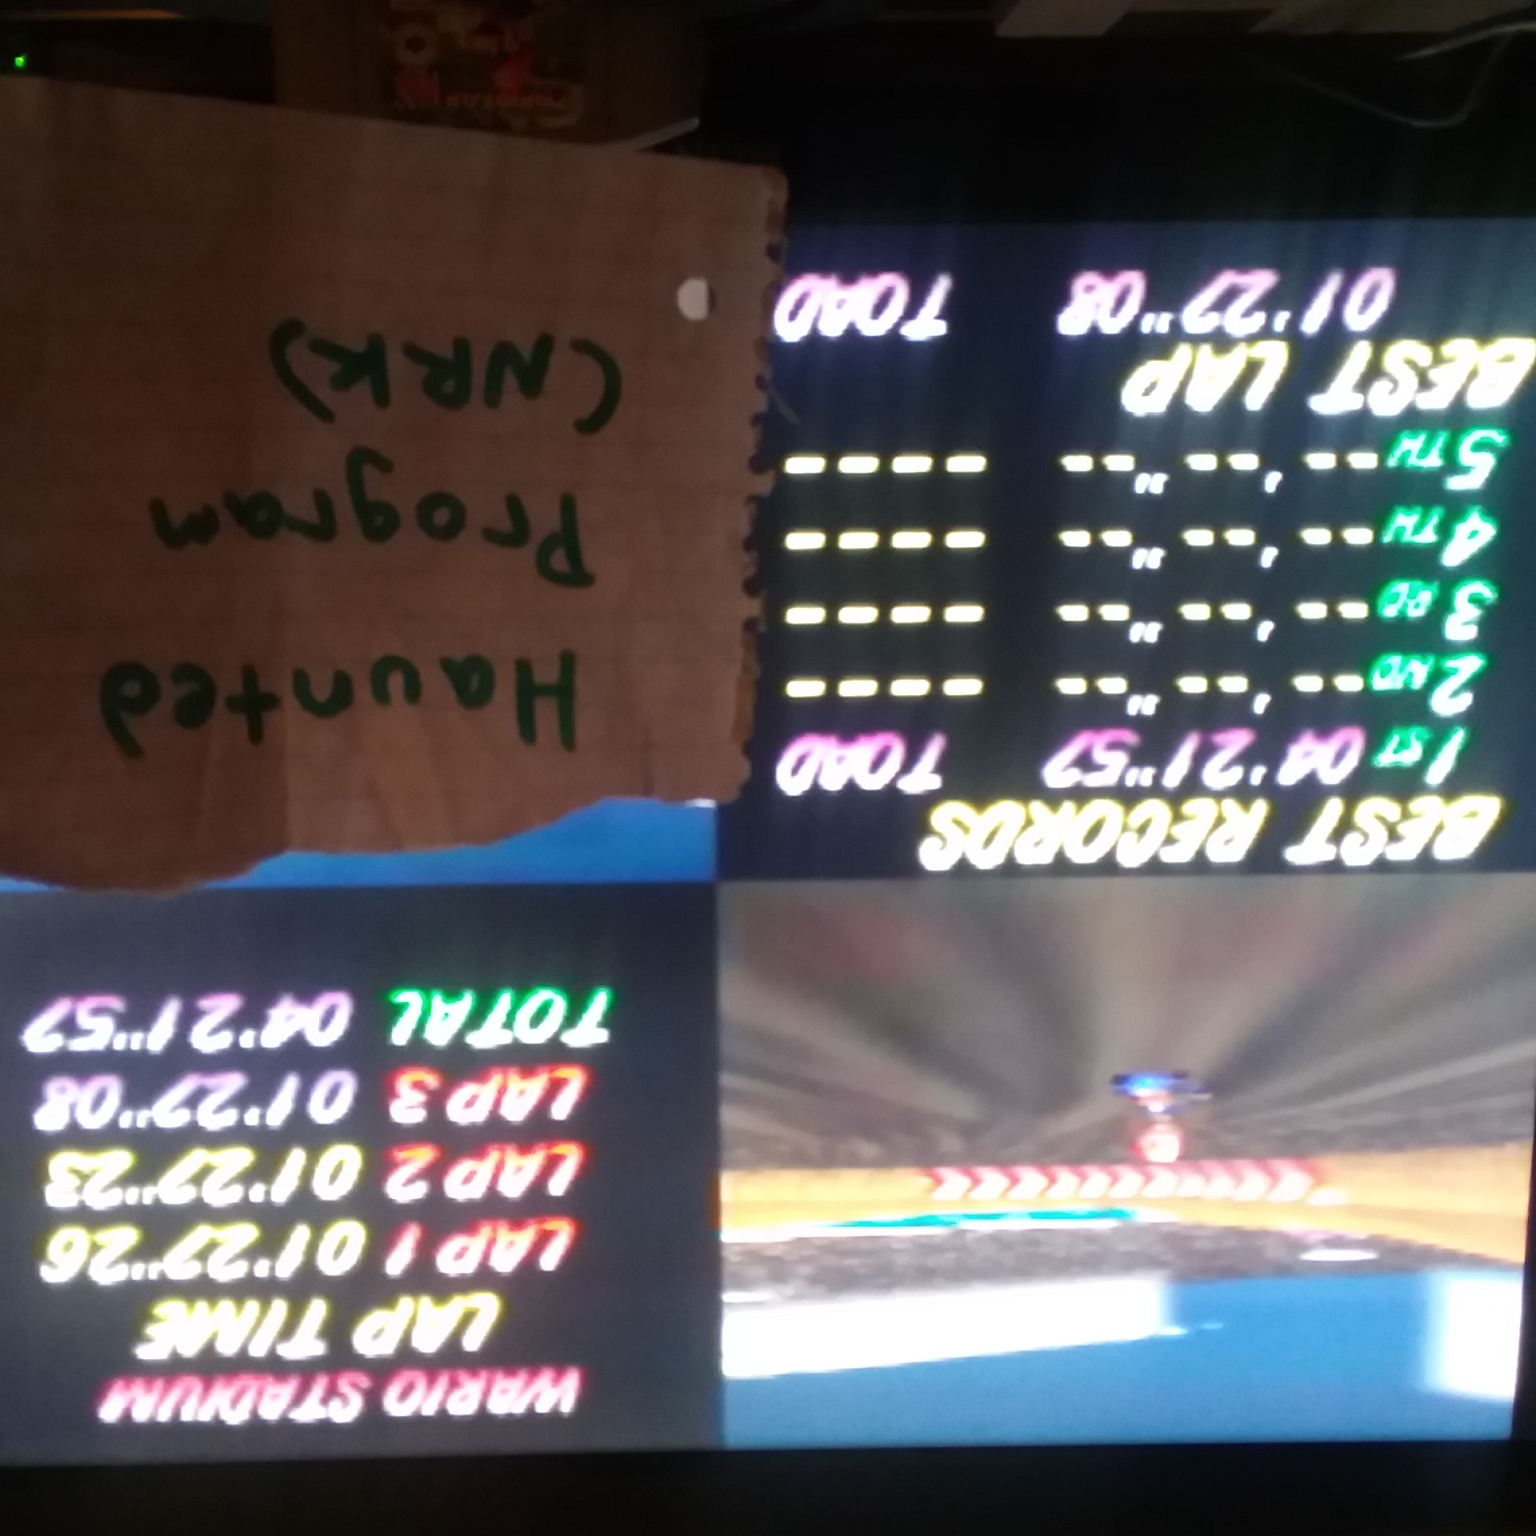 Mario Kart 64: Wario Stadium [Time Trial] time of 0:04:21.57